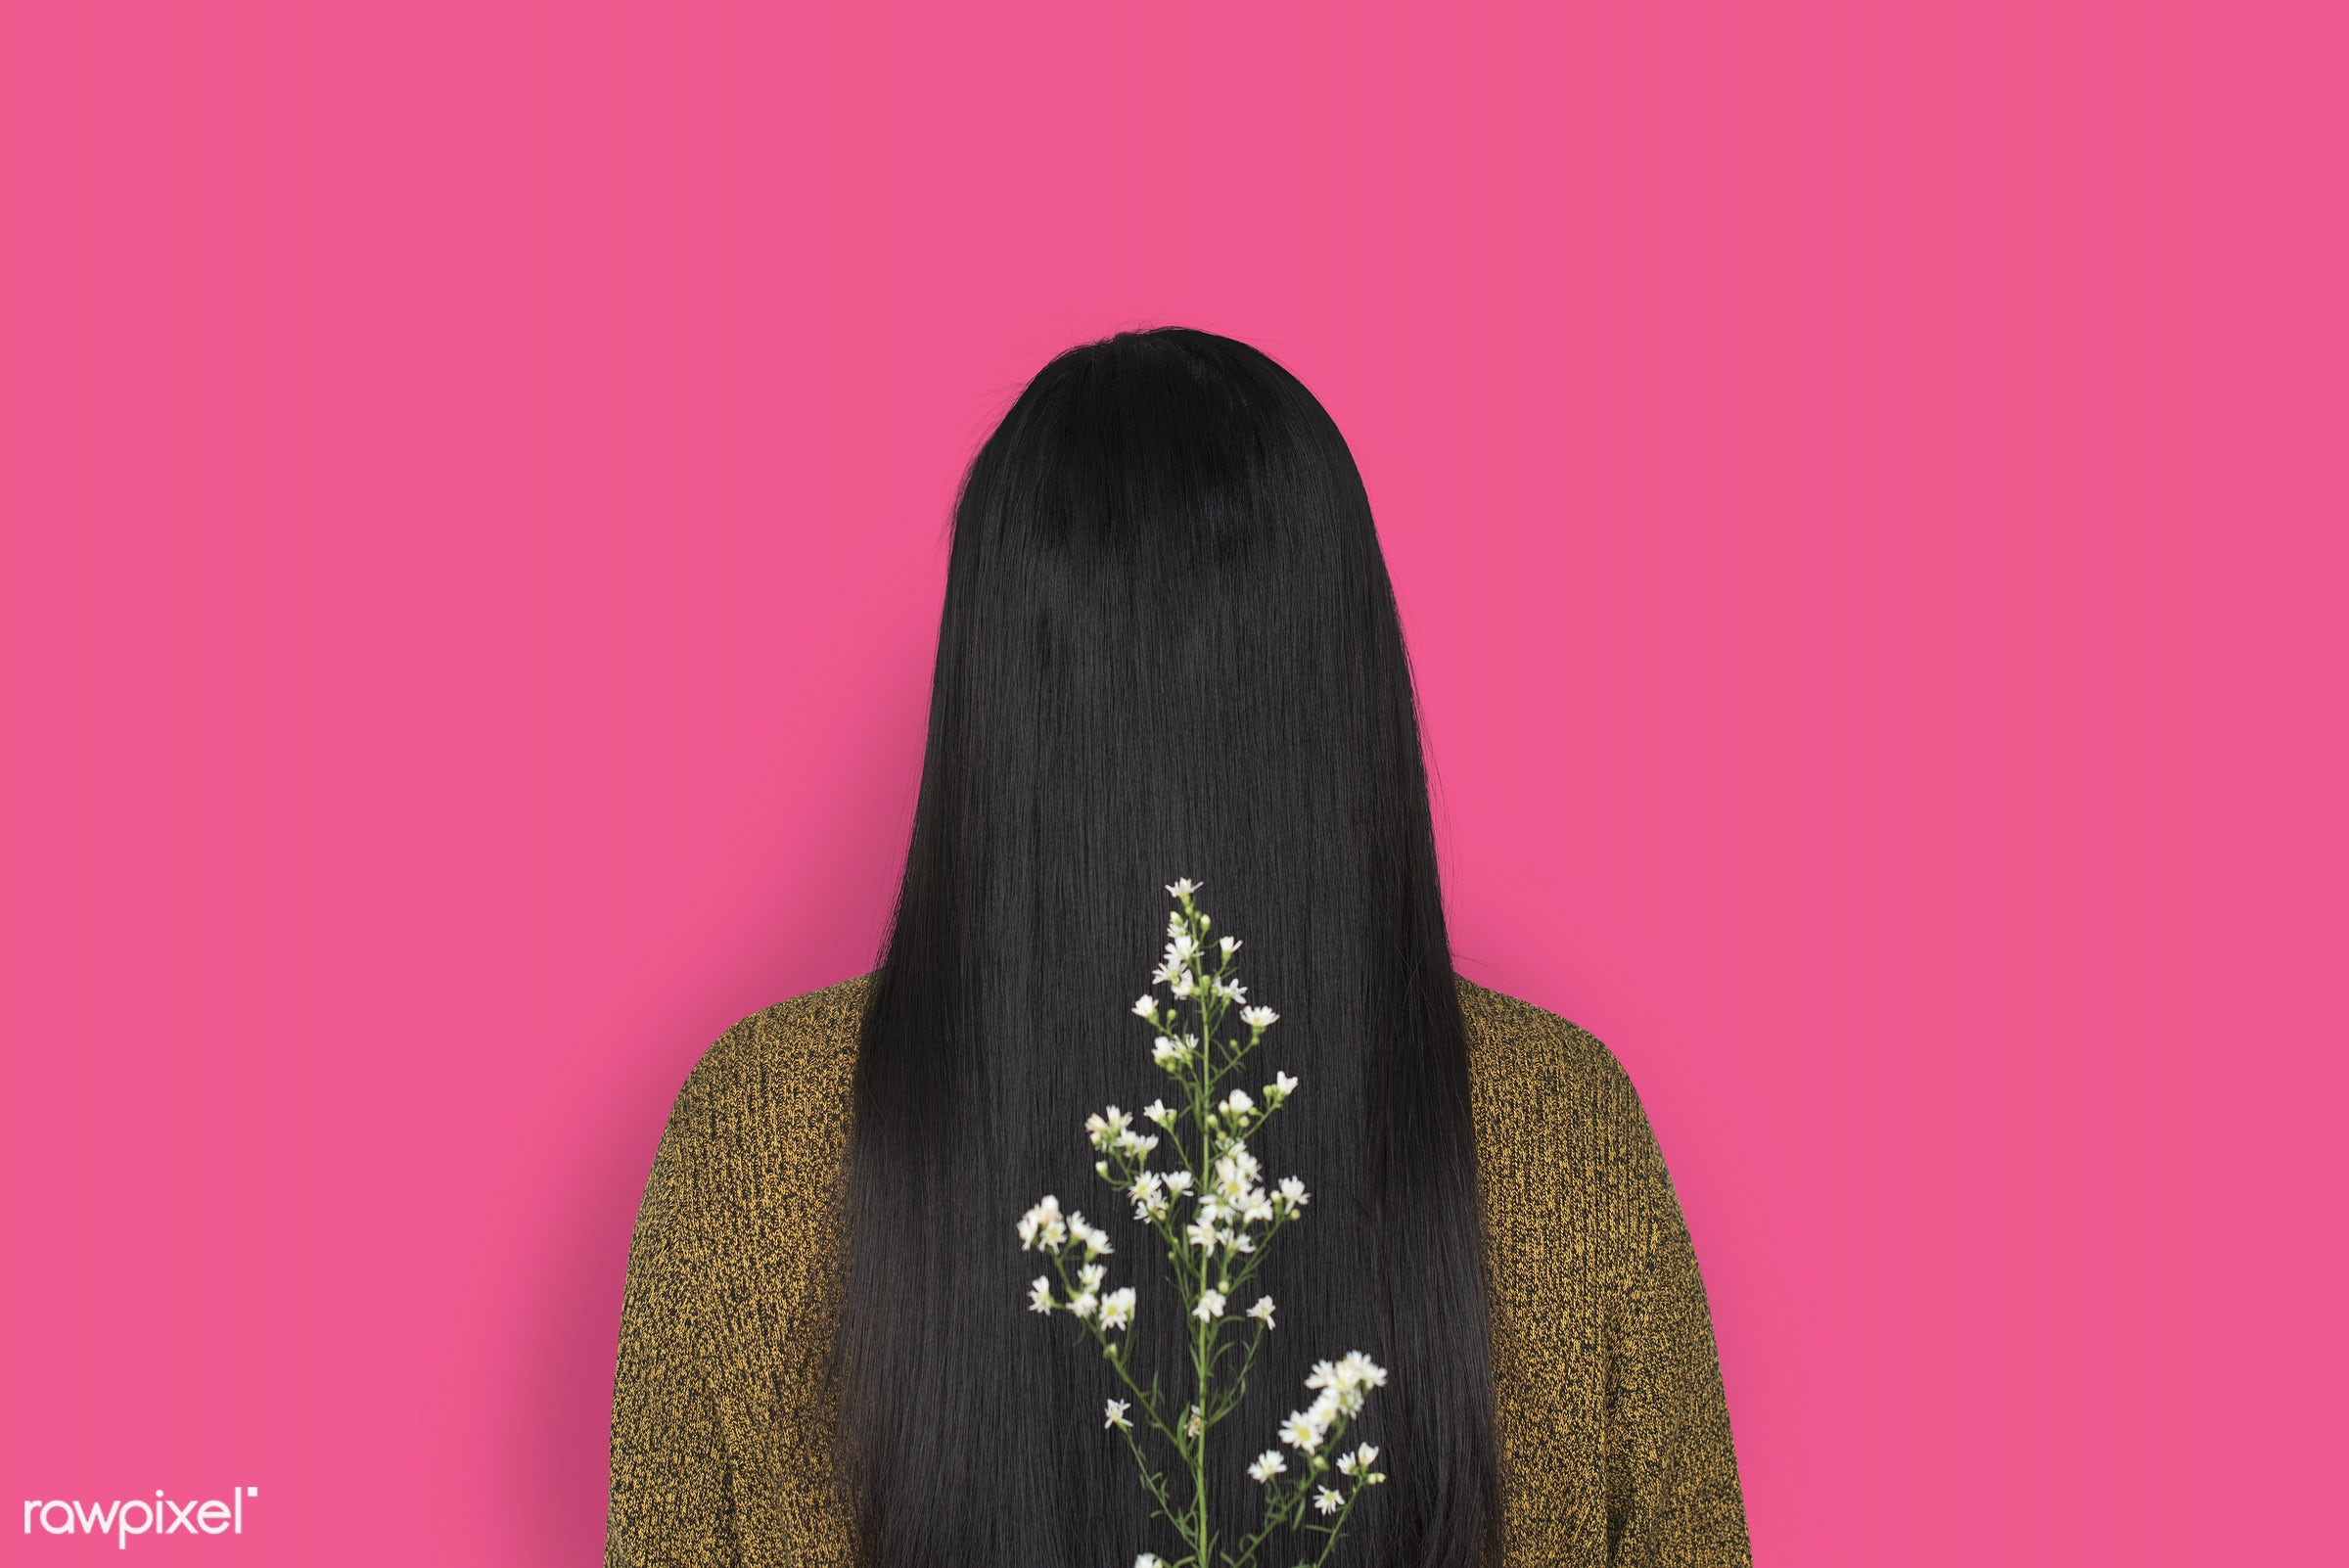 studio, person, people, girl, woman, casual, pink, flower, rear view, isolated, flora, long hair, adult, portrait, charming...